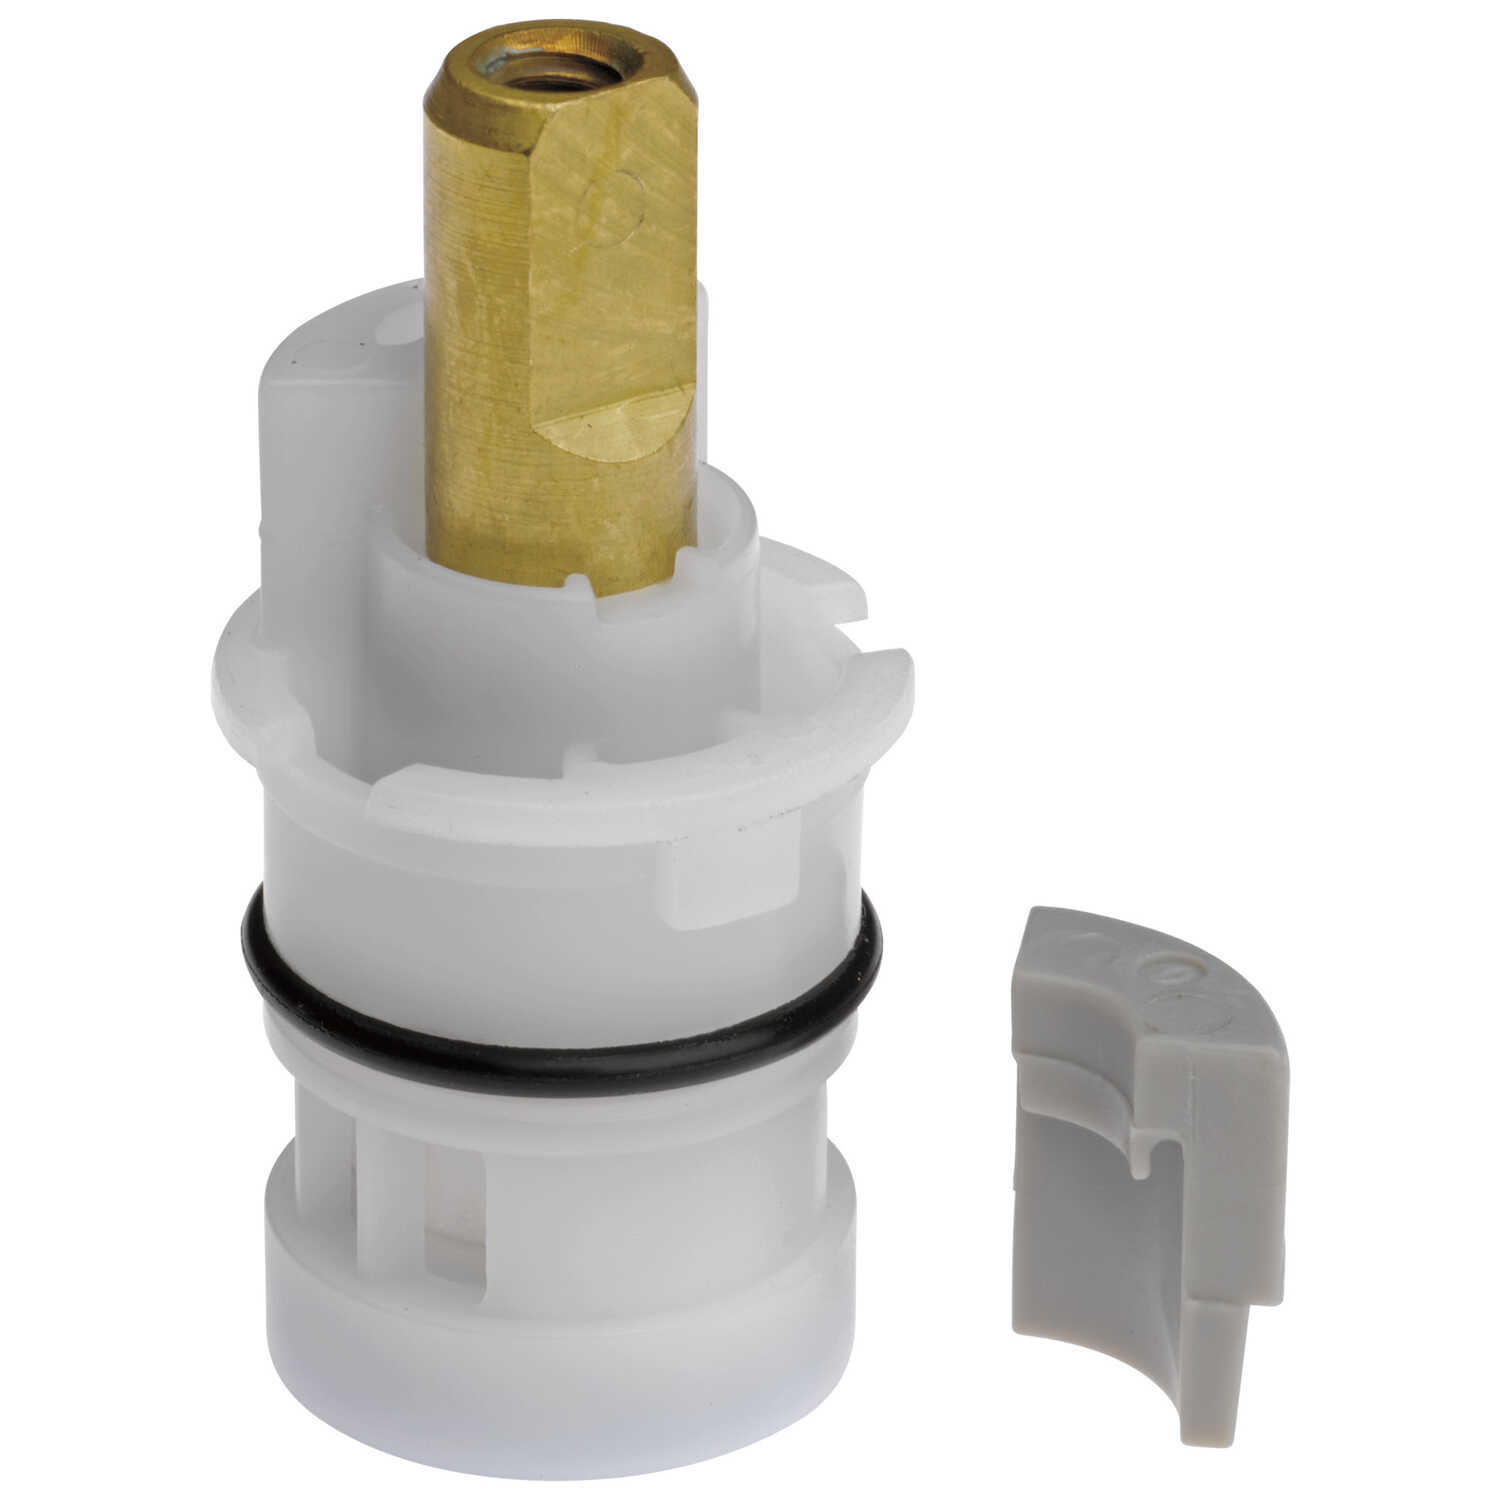 Delta  Victorian  Control Valve  Replacement Stem  For 2 Handle Faucets